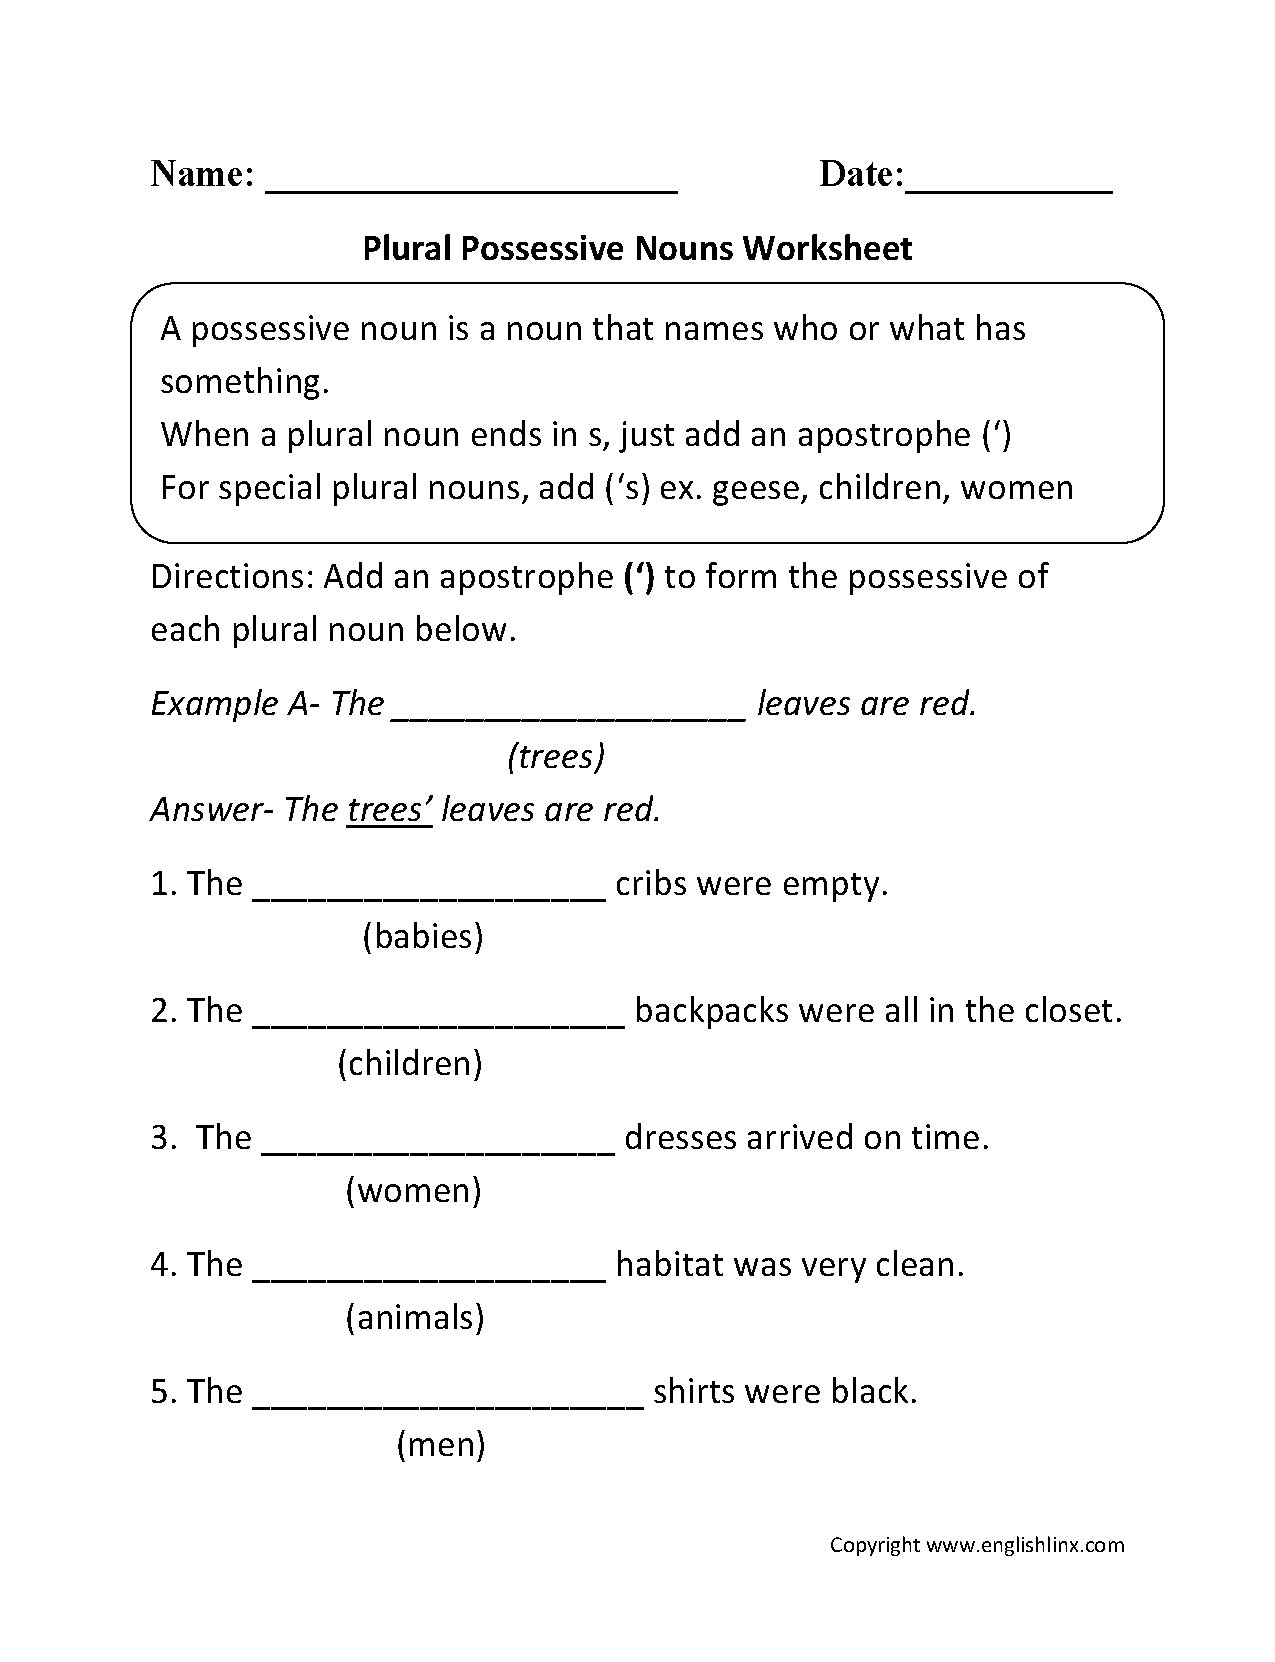 Aldiablosus  Picturesque Nouns Worksheets  Possessive Nouns Worksheets With Inspiring Possessive Nouns Worksheets With Enchanting Worksheet Of Letter A Also President Day Worksheets In Addition Addition With Number Line Worksheet And Rd Grade Math Worksheets Online As Well As History Worksheets Th Grade Additionally Preposition Worksheet Grade  From Englishlinxcom With Aldiablosus  Inspiring Nouns Worksheets  Possessive Nouns Worksheets With Enchanting Possessive Nouns Worksheets And Picturesque Worksheet Of Letter A Also President Day Worksheets In Addition Addition With Number Line Worksheet From Englishlinxcom